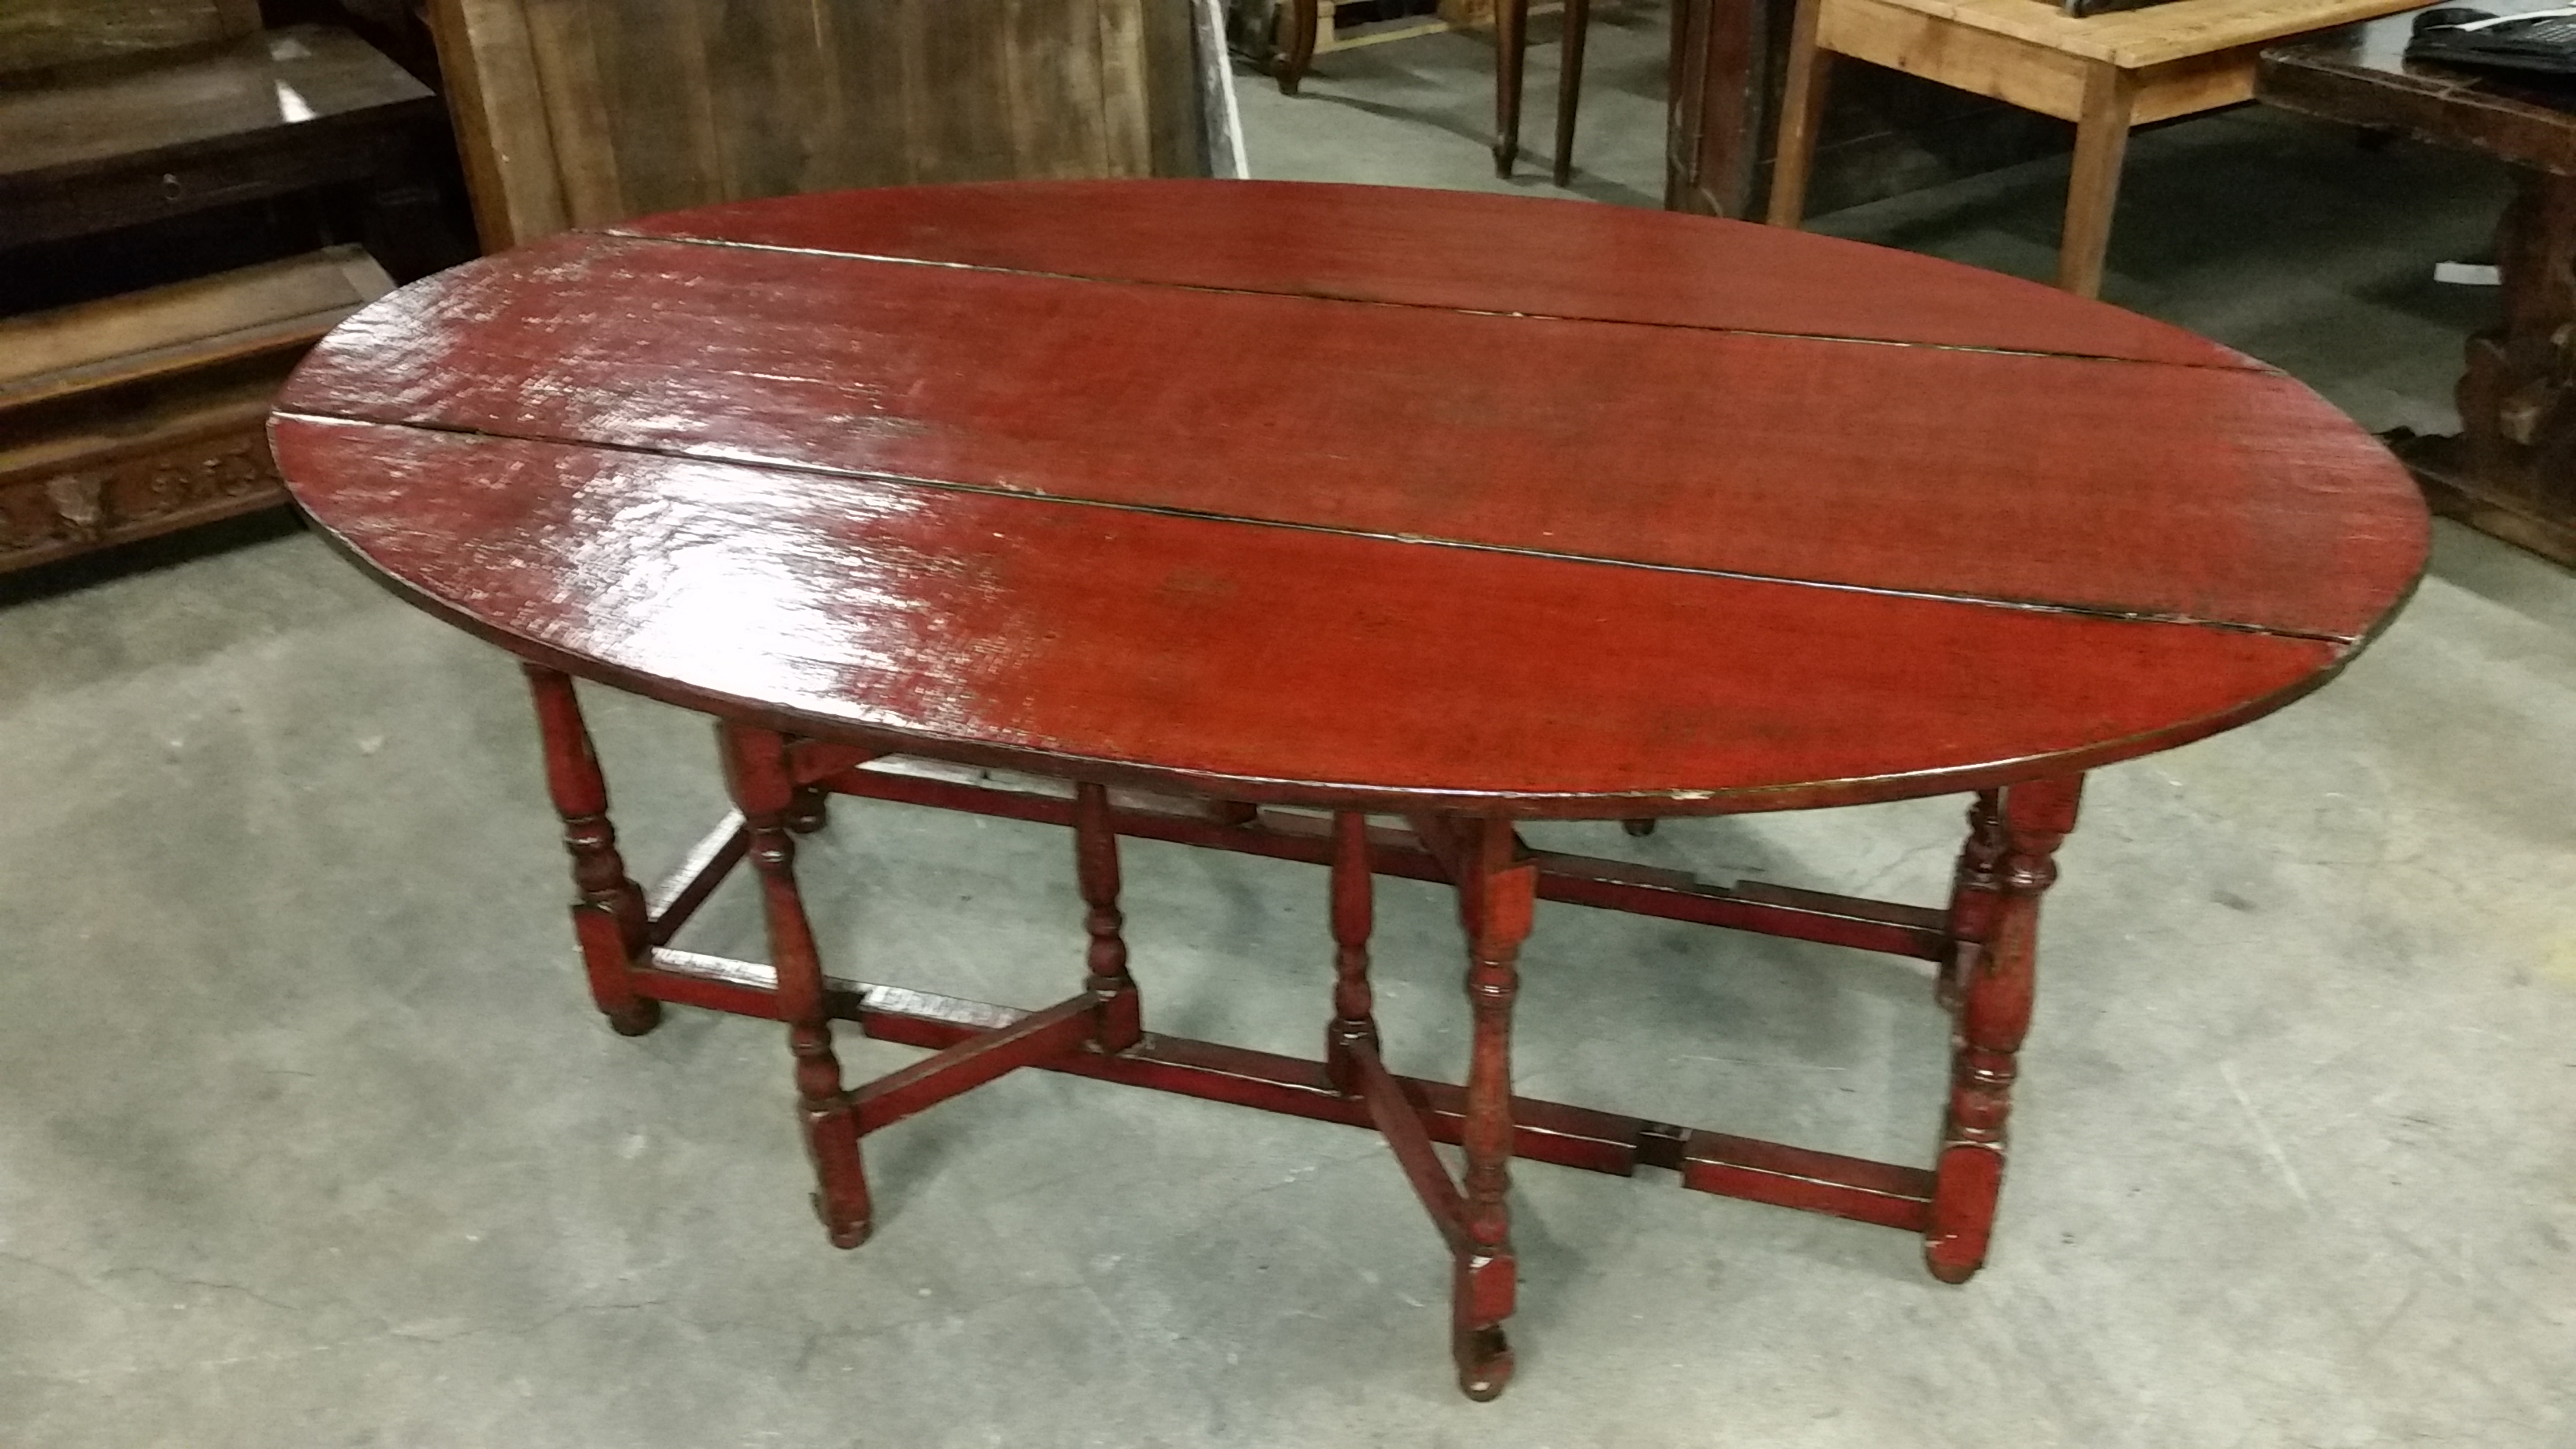 Red Laquer wake table